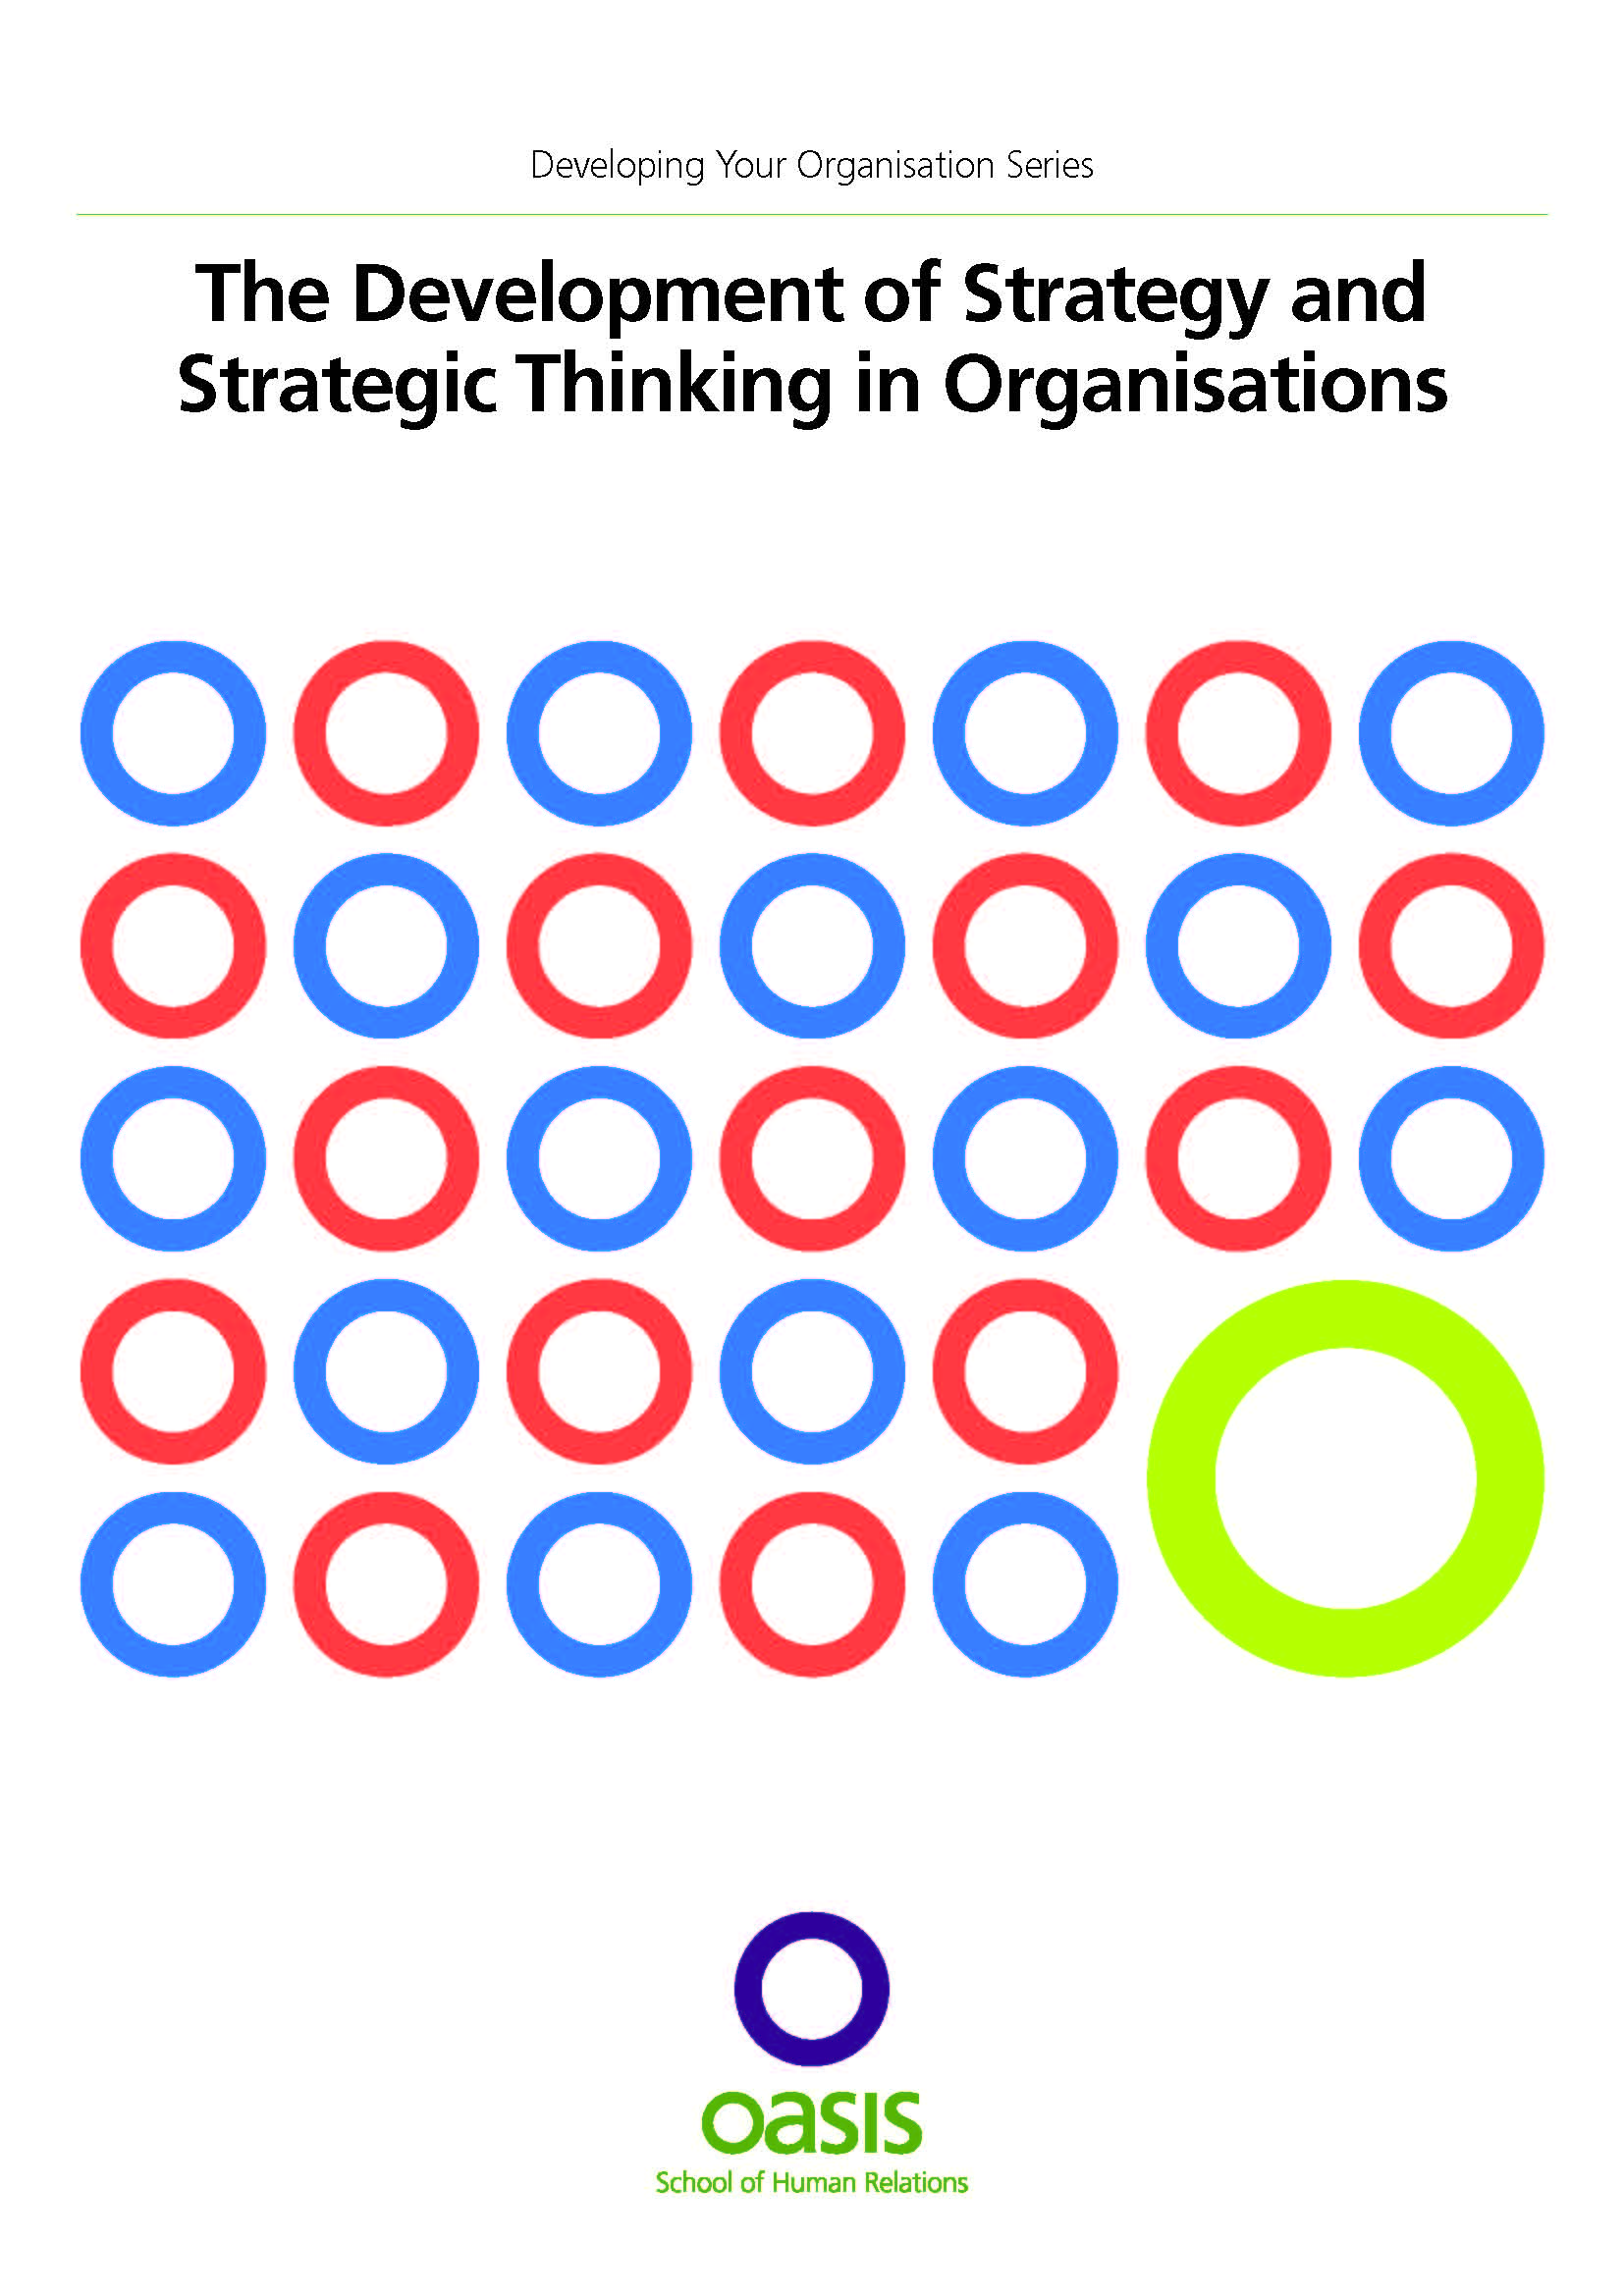 The Development of Strategy and Strategic Thinking in Organisations